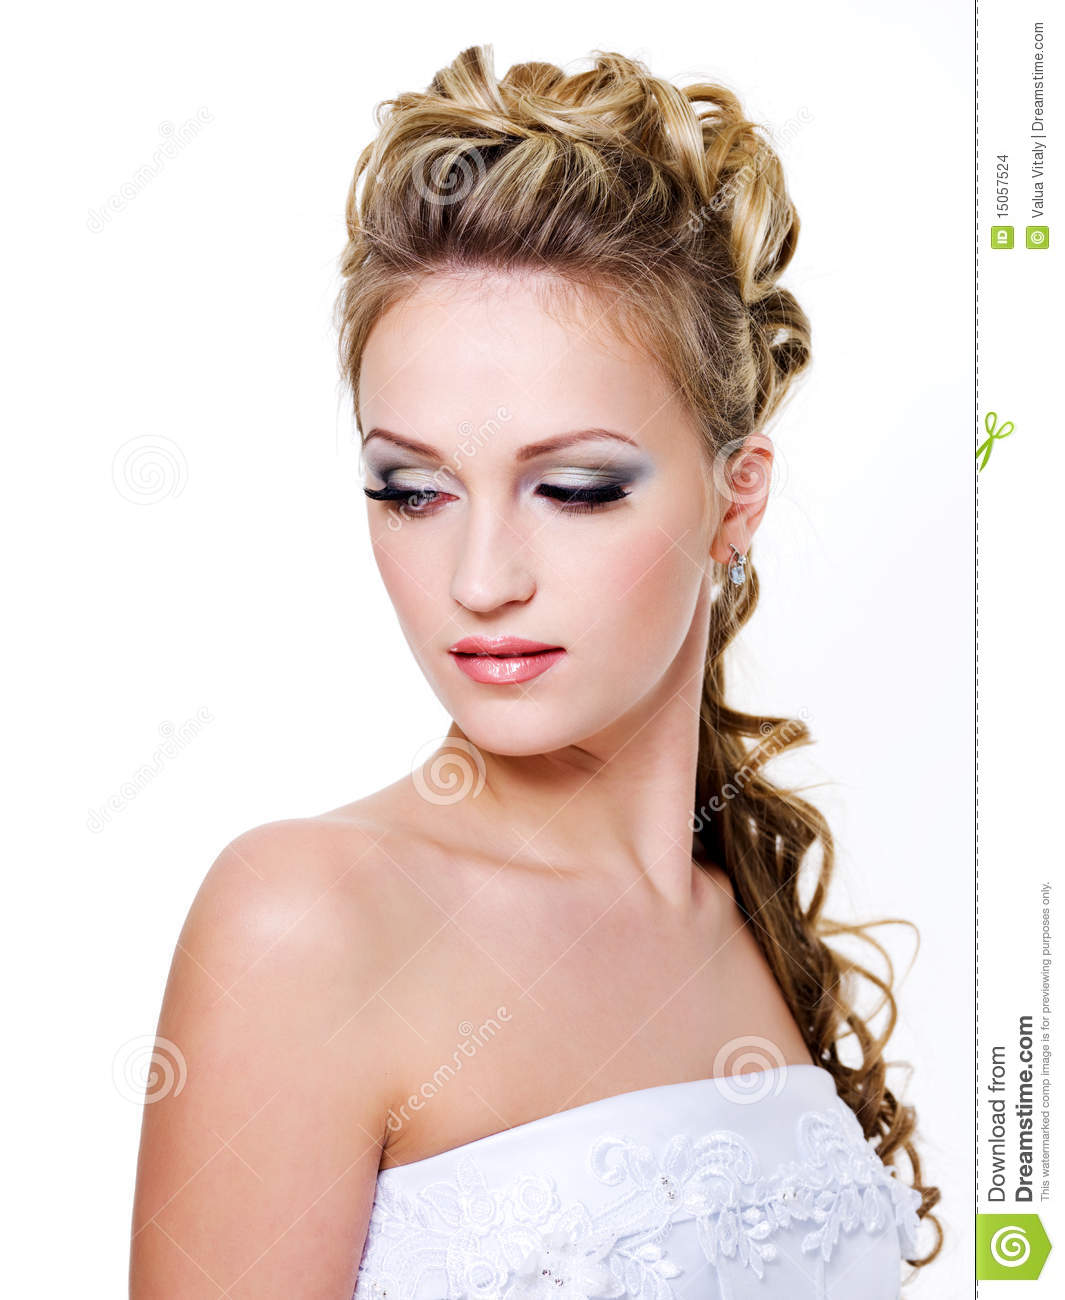 femme avec la belle coiffure de mariage photo stock image du visage studio 15057524. Black Bedroom Furniture Sets. Home Design Ideas